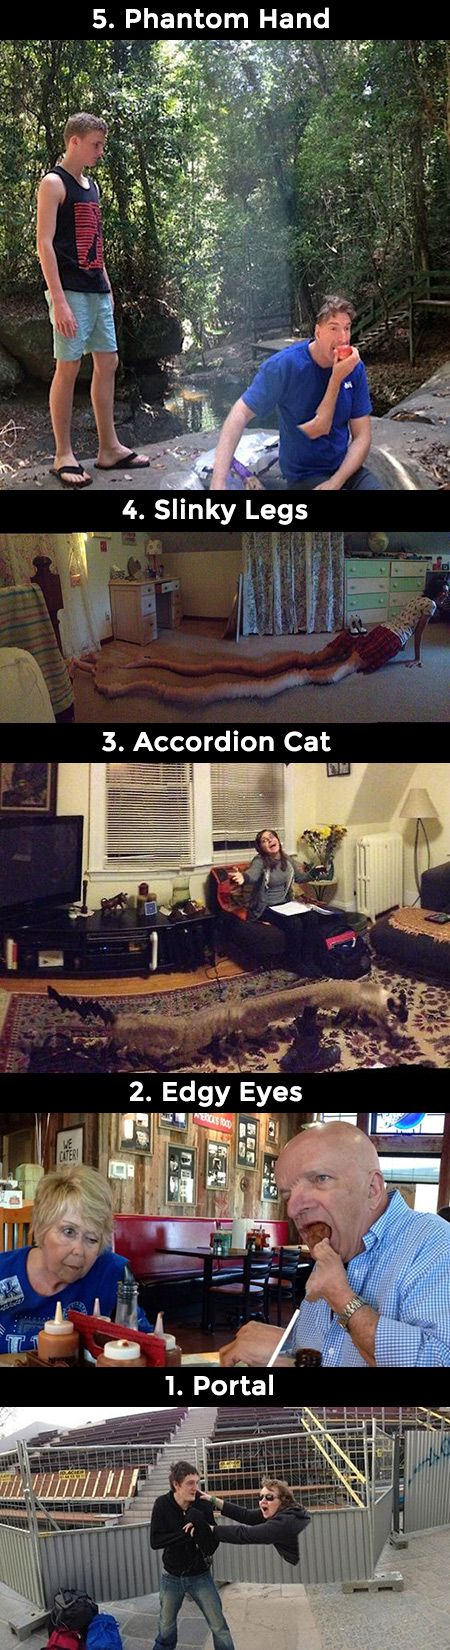 If you do not move your camera fast enough when taking panoramas, these disasters will ensue.